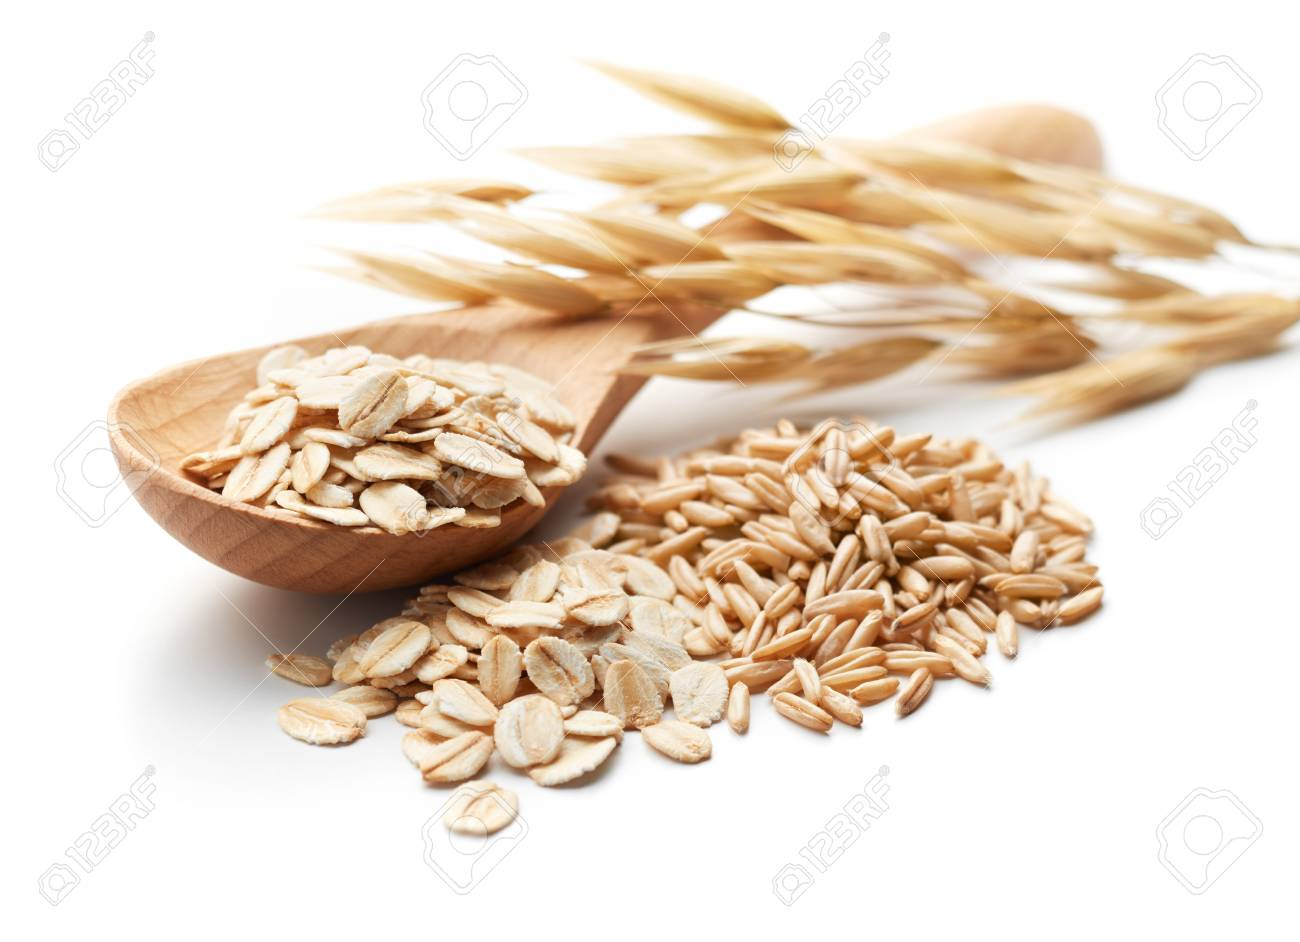 scoop and pile of oatmeal with its unprocessed grains and plant - 92489617